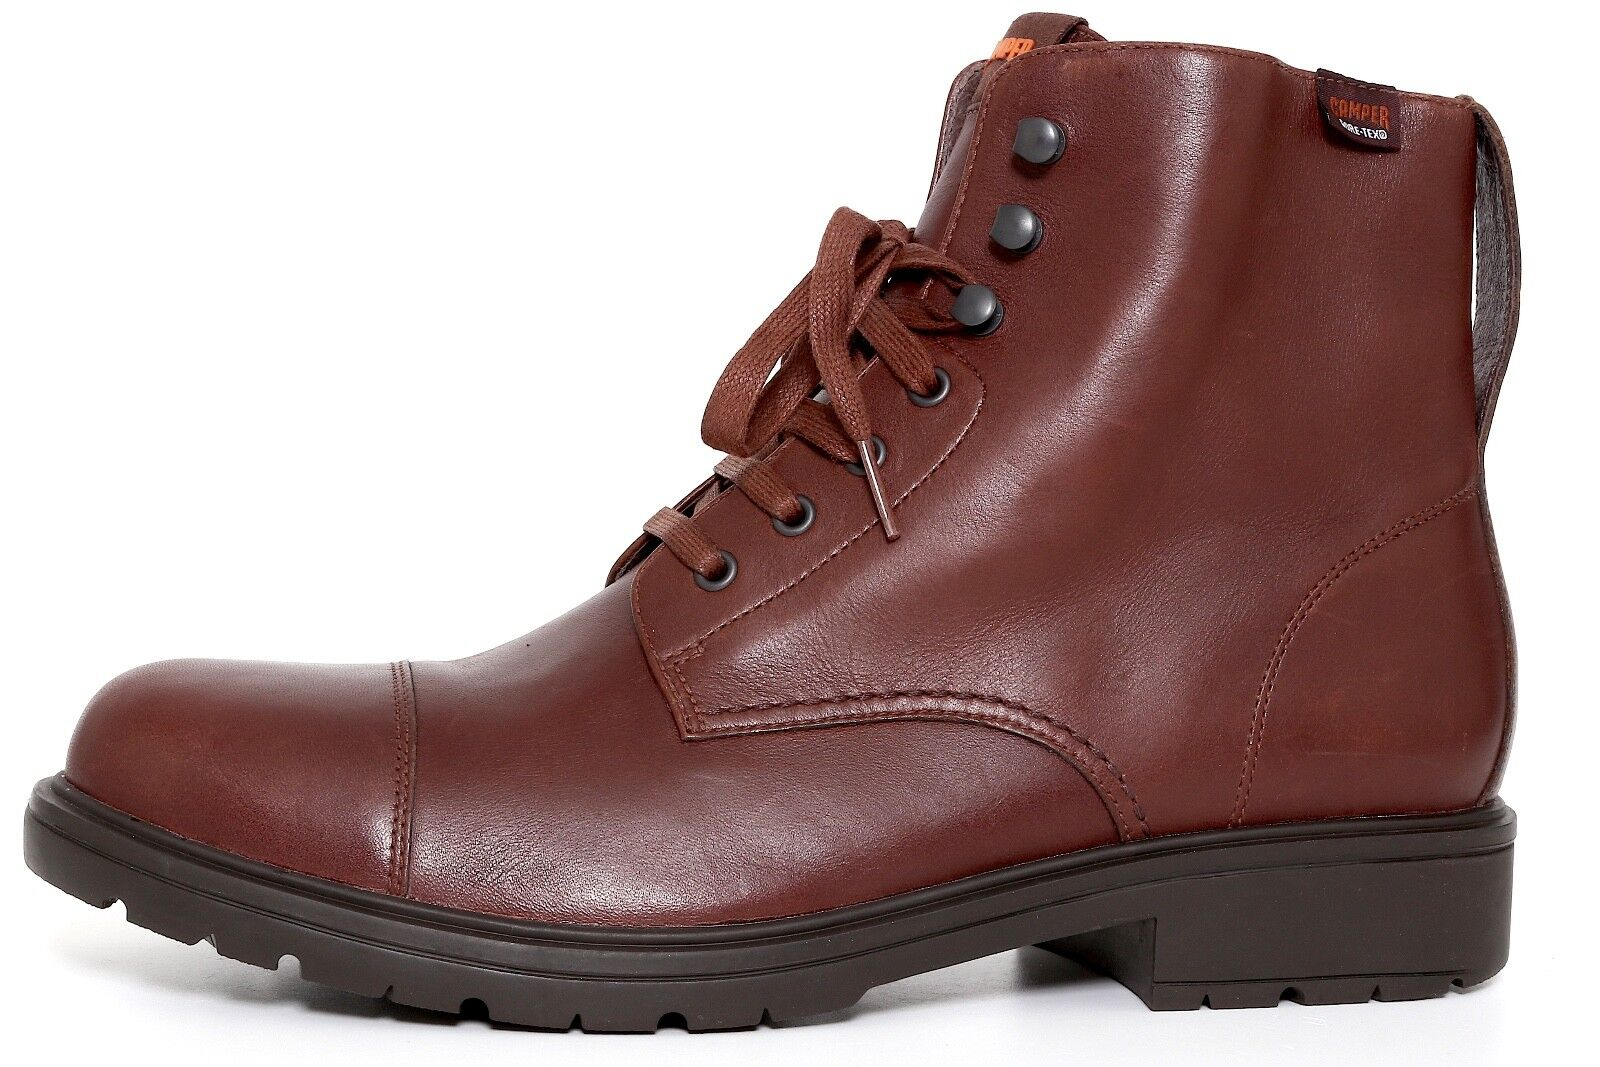 Camper Men's Brown Leather Boots 9011 Size 43 EUR NEW